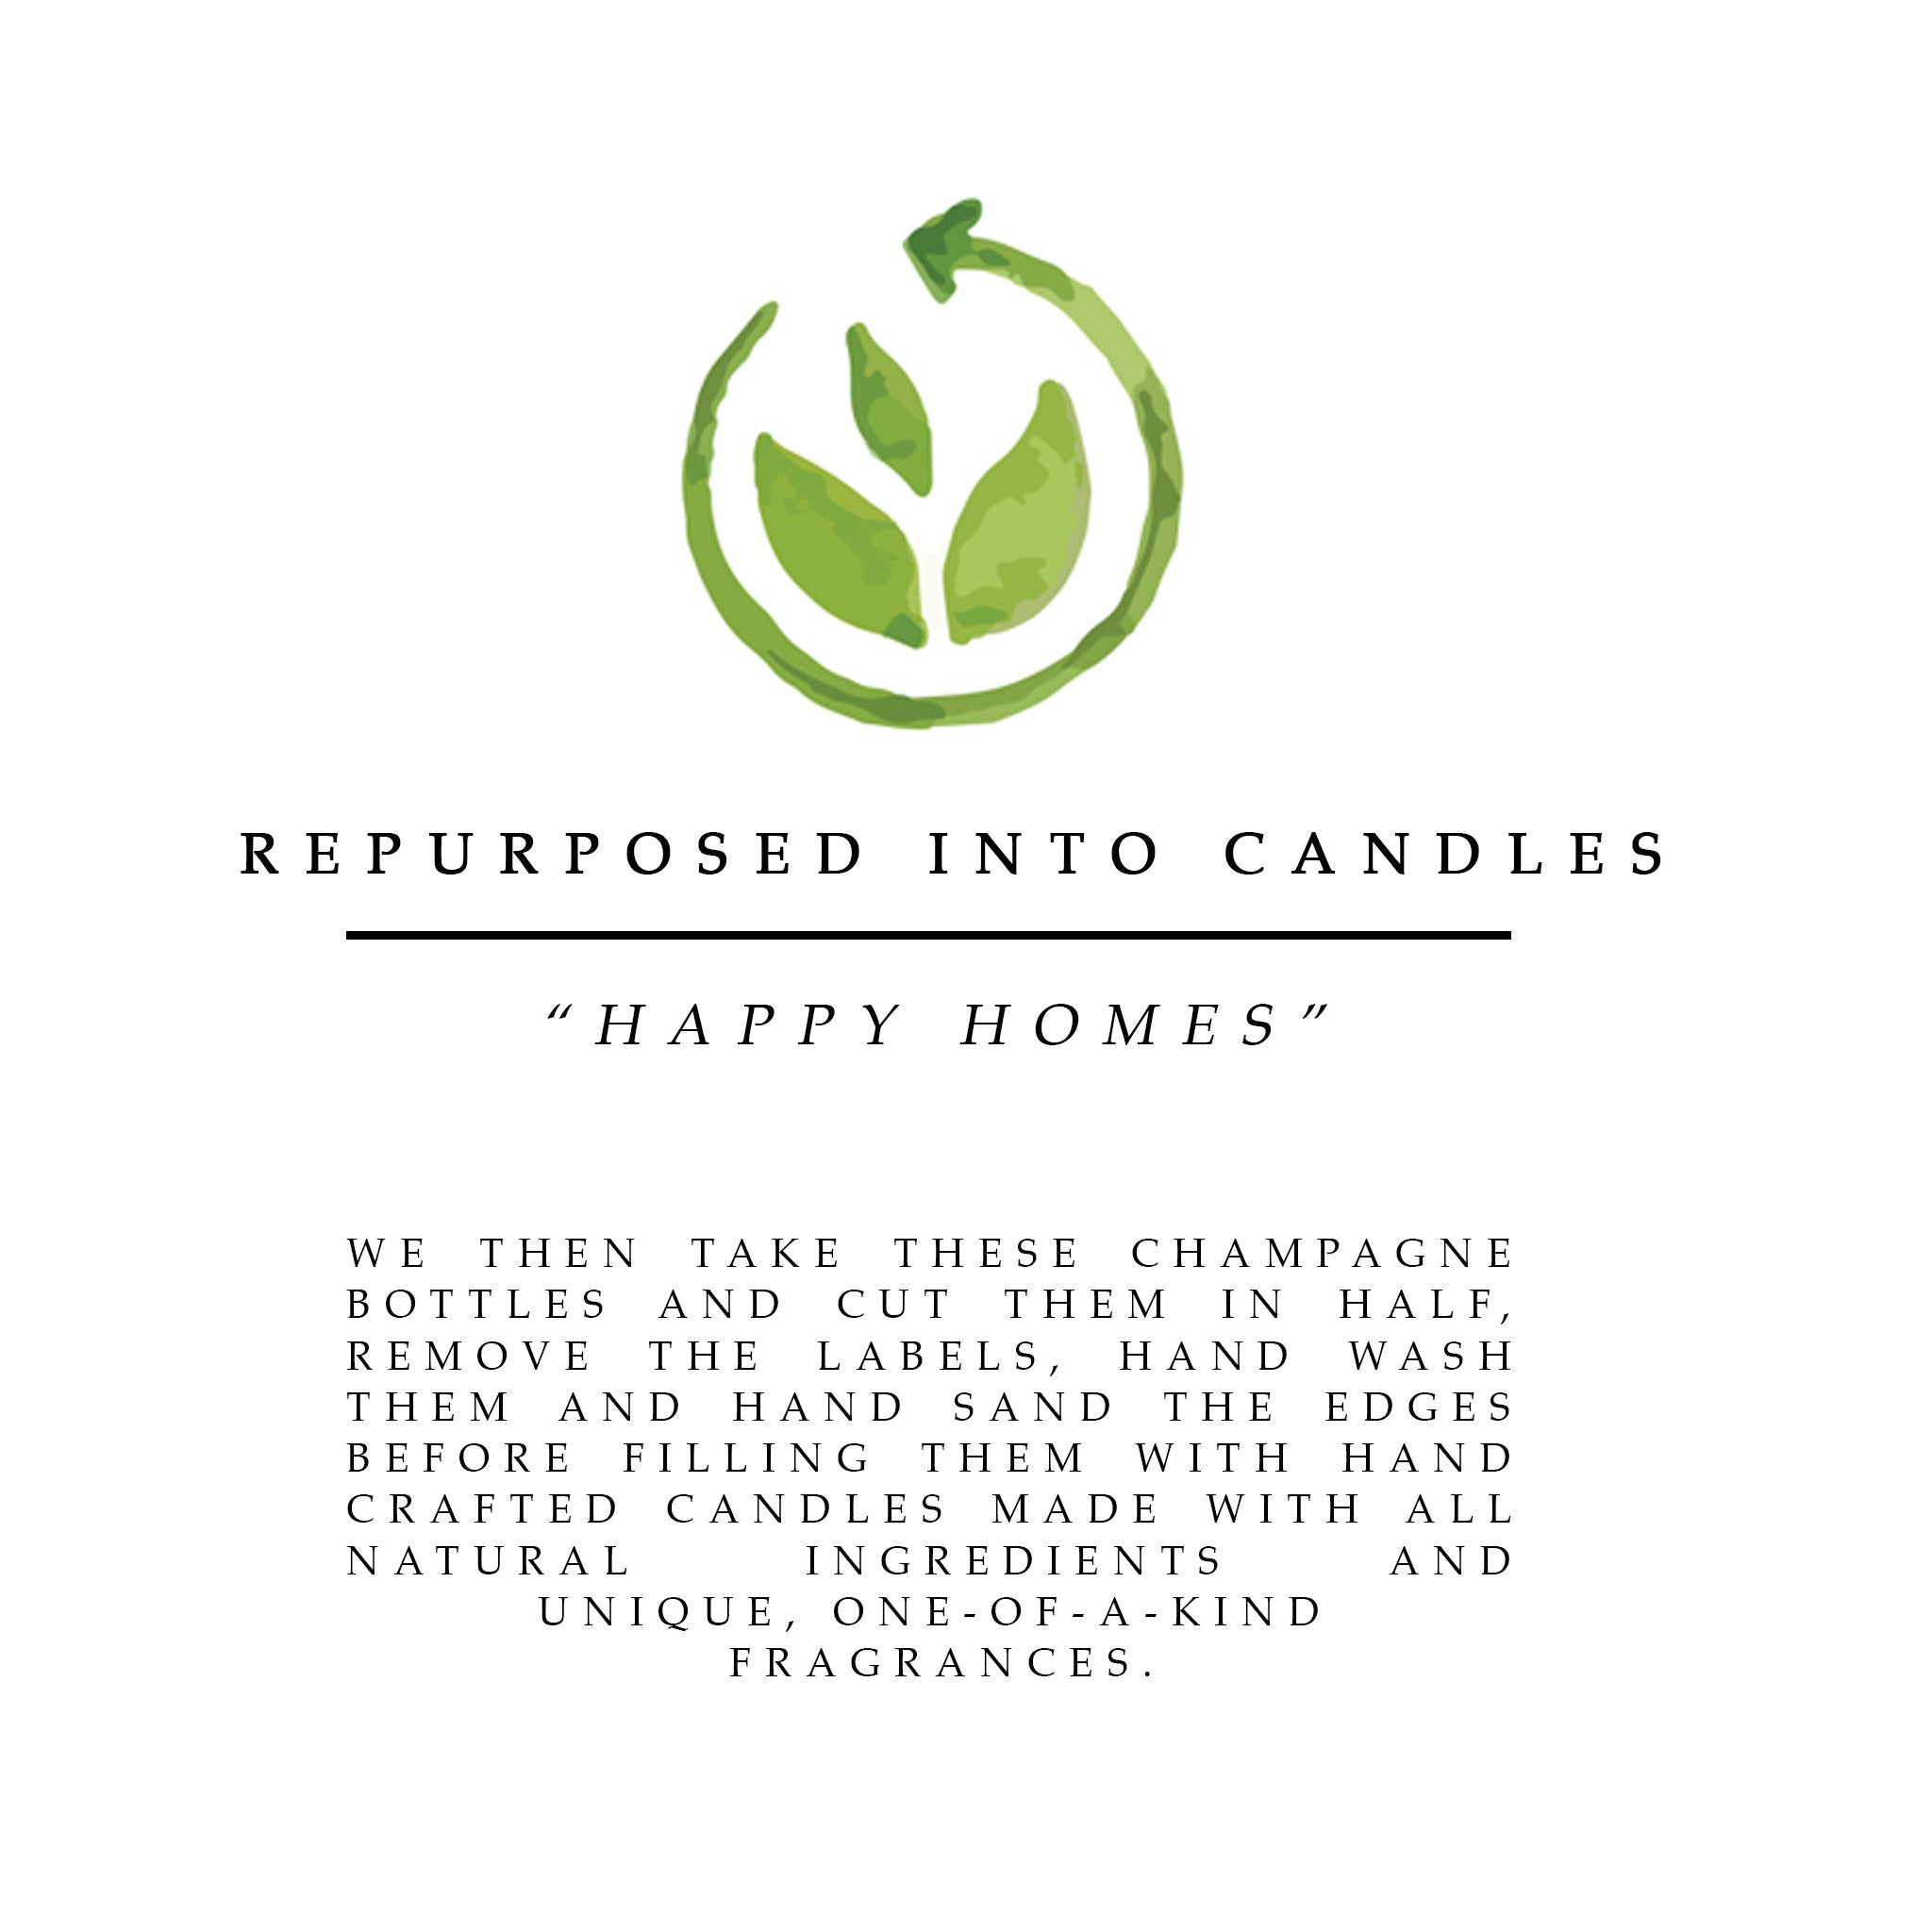 reduce reuse recycle eco friendly candles sustainable brand